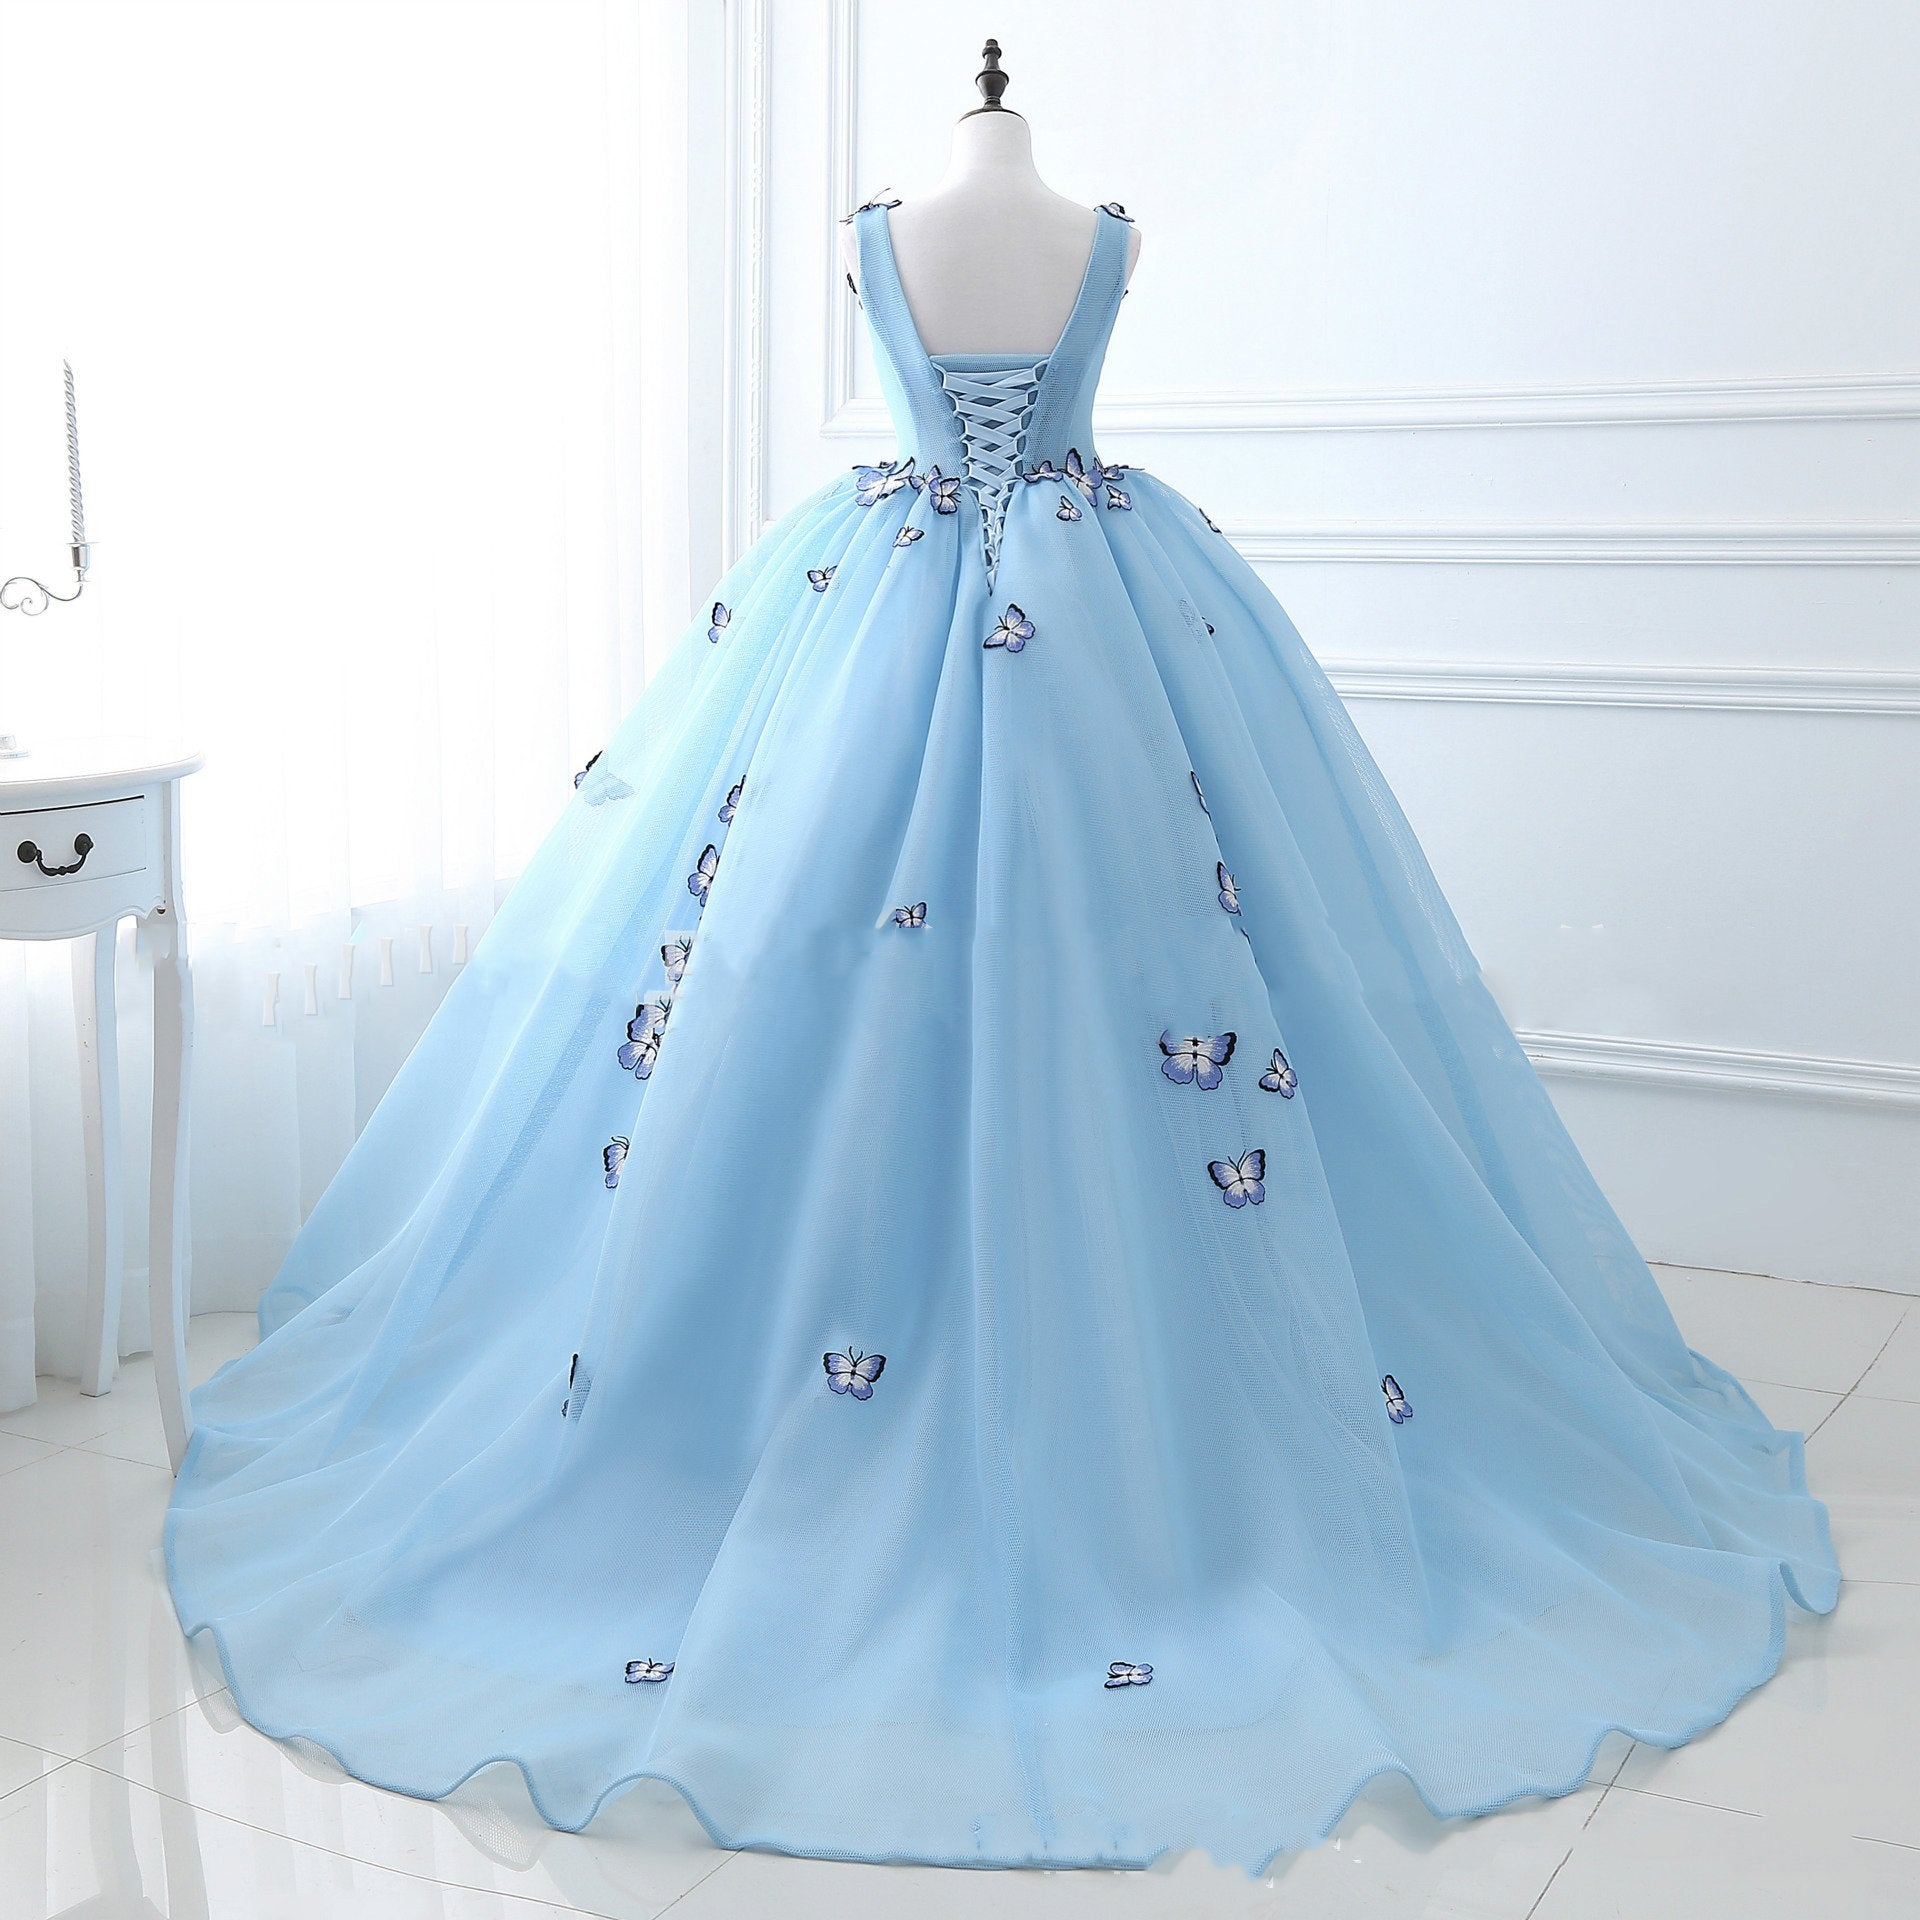 Butterfly Fluffy Tail Wedding Evening Dress Cross-Border E-Commerce Wedding Dress Evening Dresses